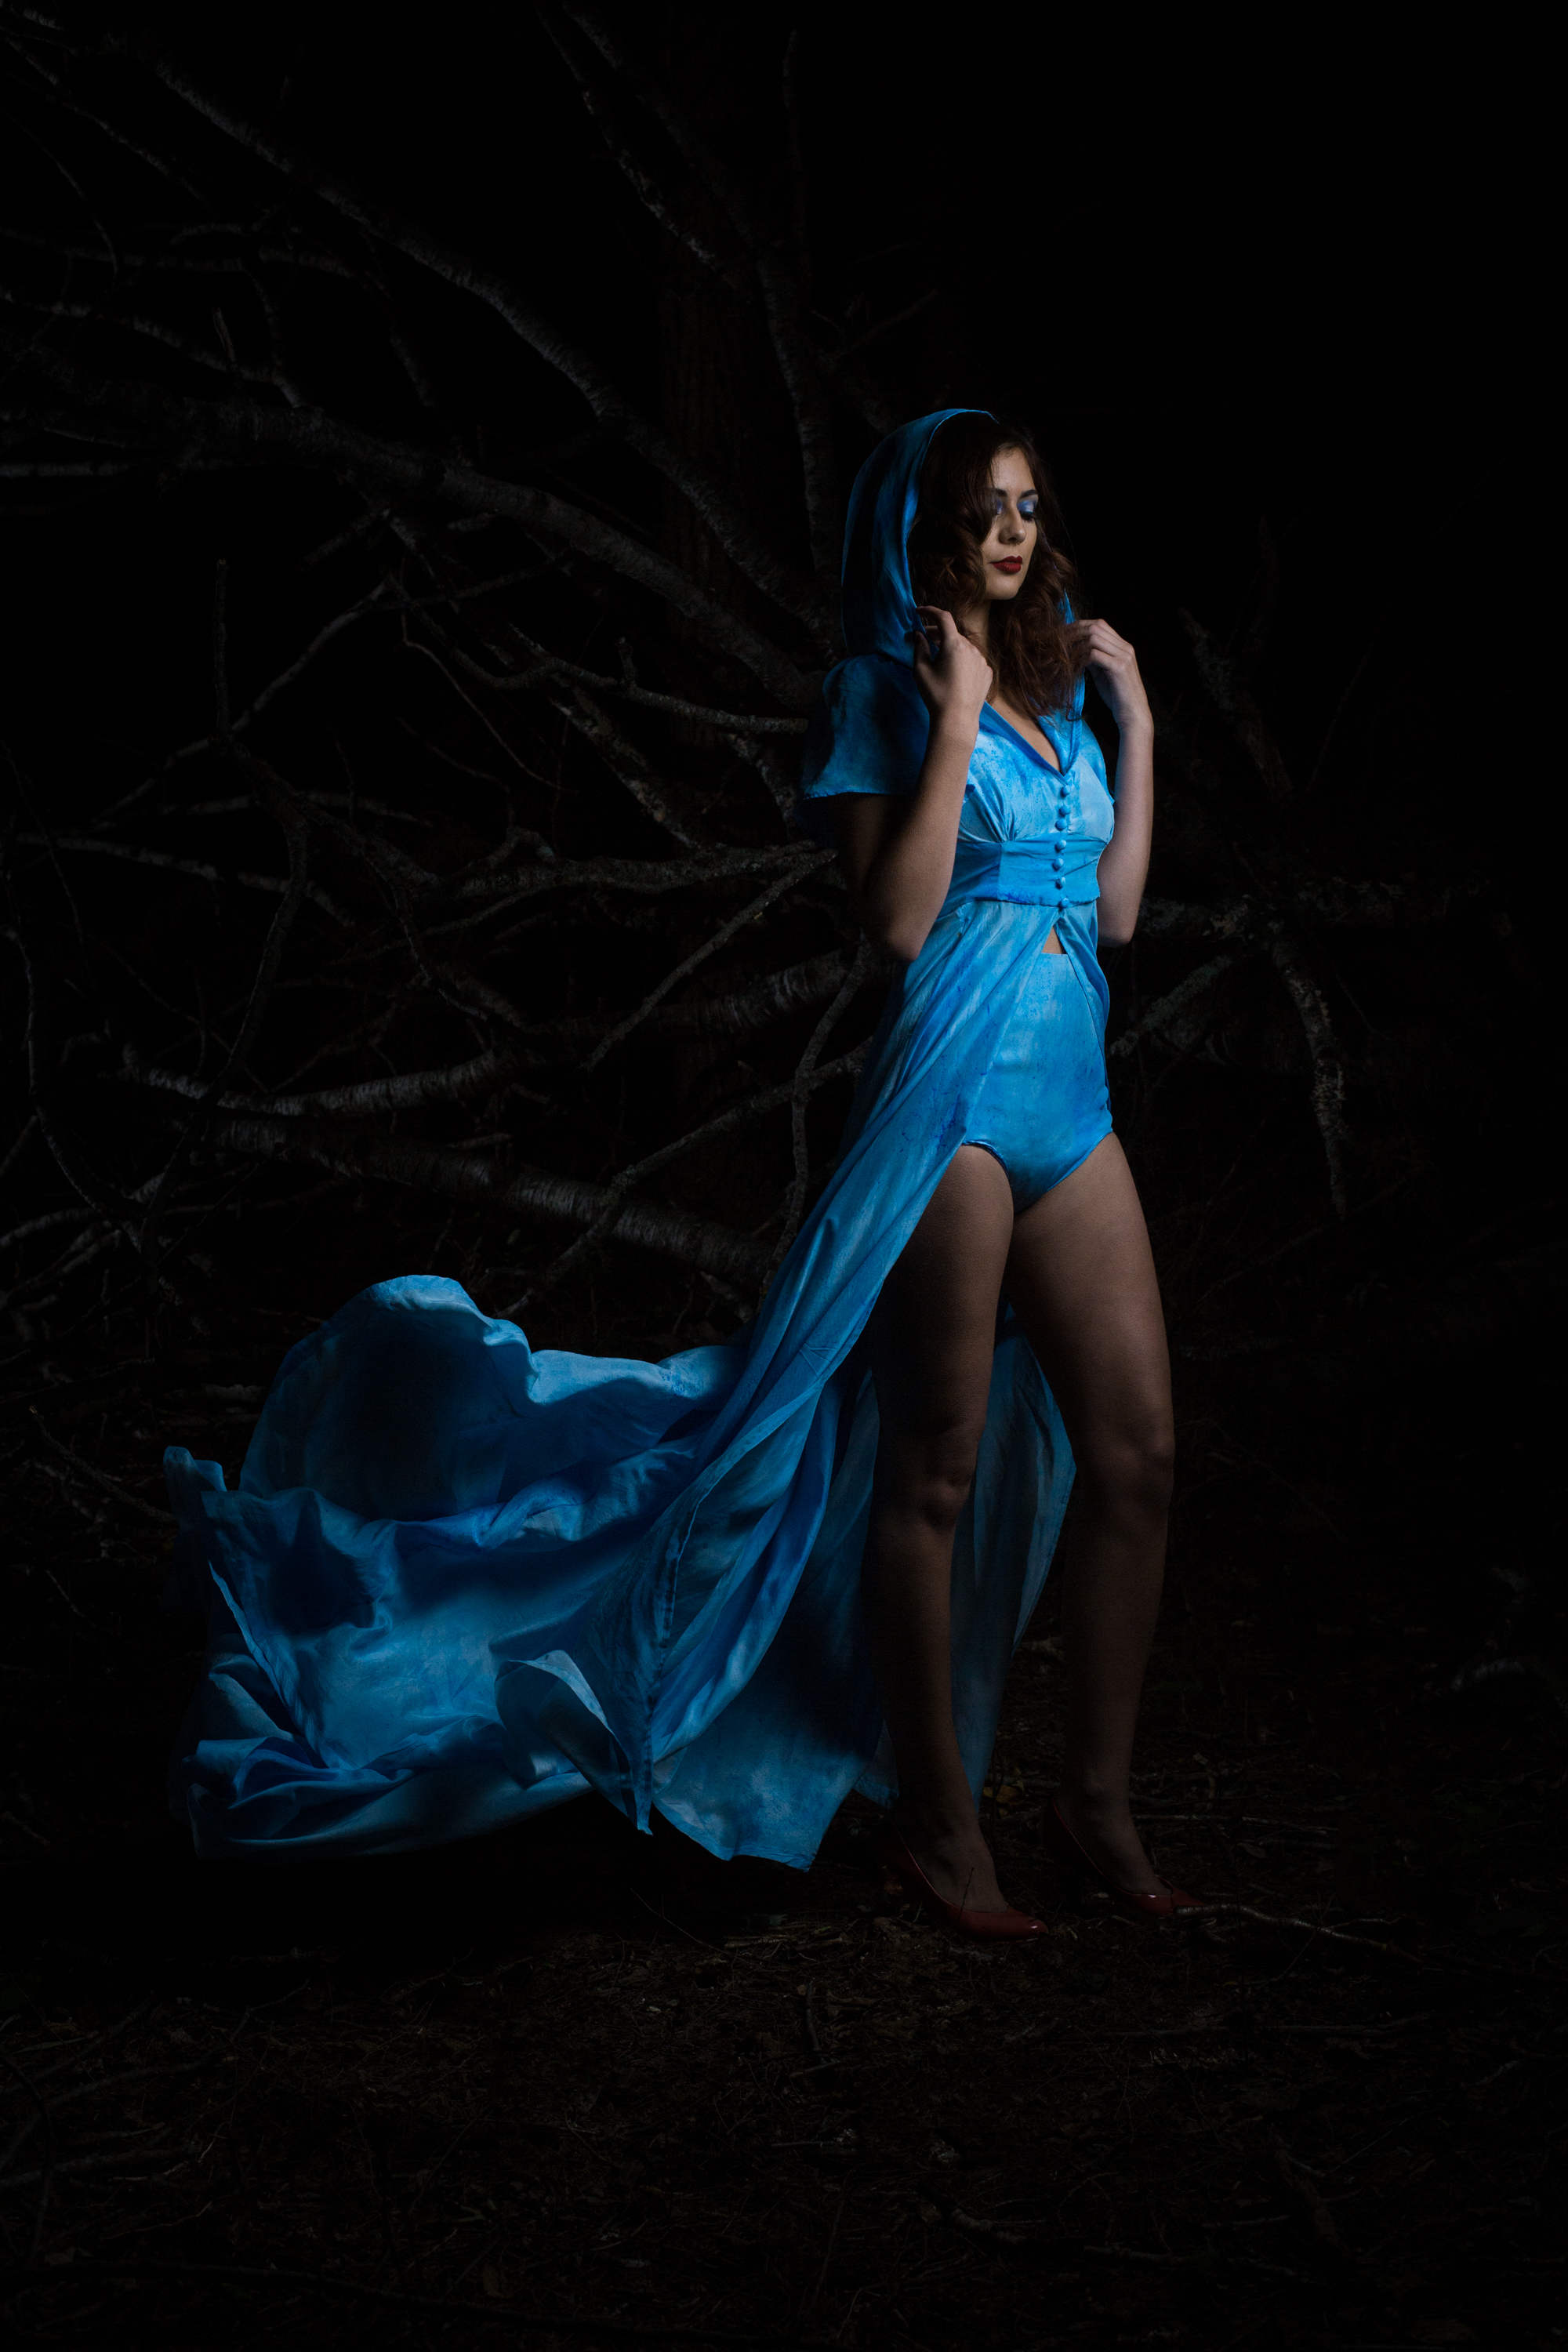 Photography: Lance Kenneth Blakney l Model: Kayley Reed l Hair: Mike Drost l MUA: Billy Peterson l Fashion Design: Michelle Duncan l Suface Design/Producer: Dee Wilkie